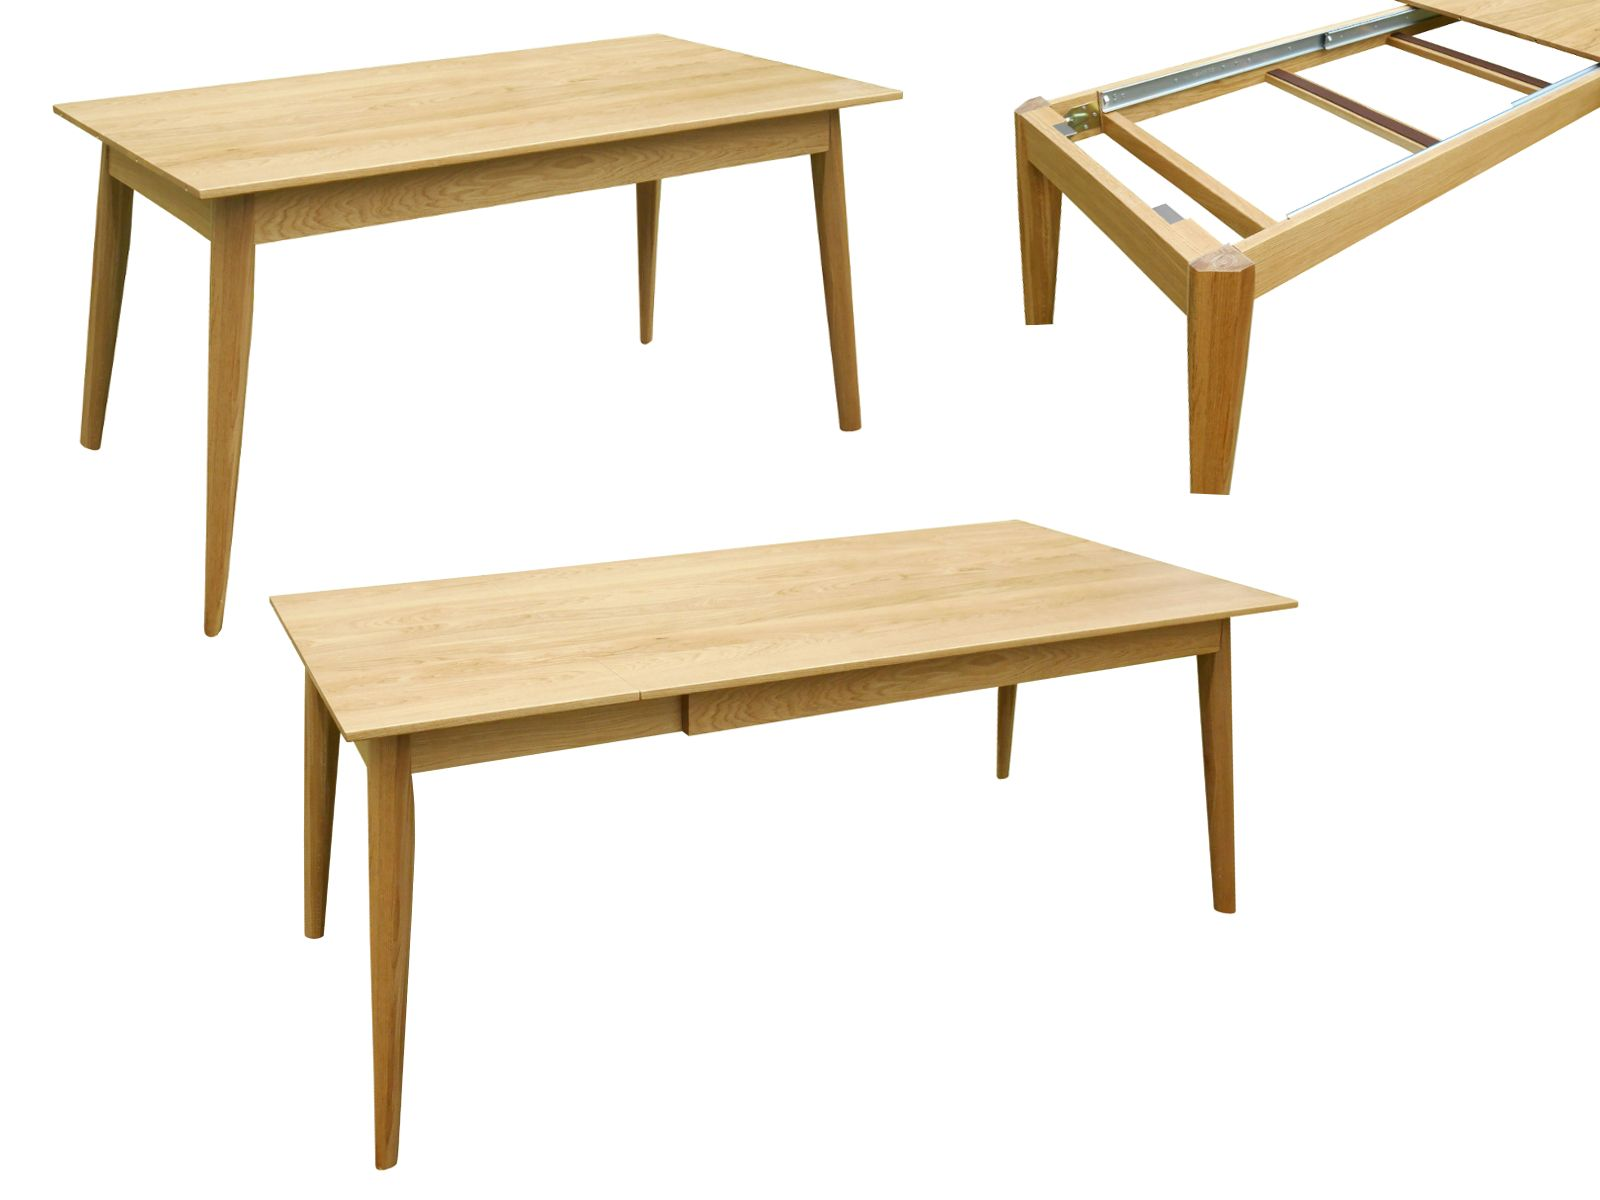 120 best tables & coffee tables images on Pinterest